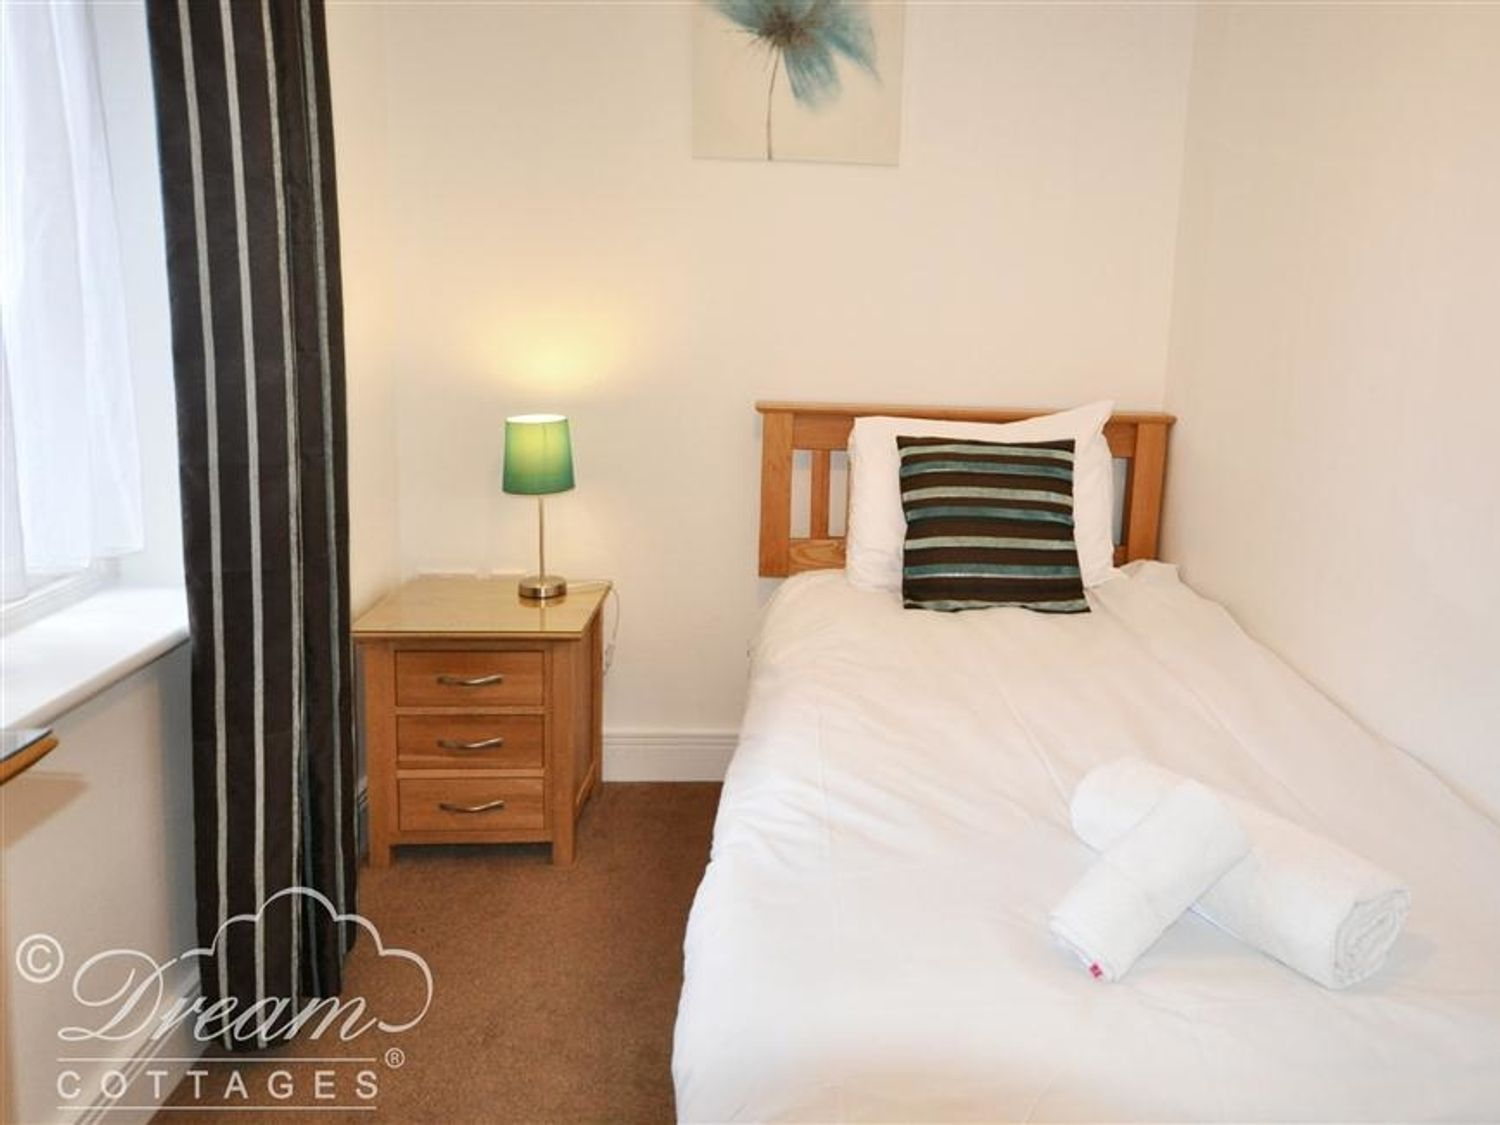 Admiral's Quarter Apartment 5, Weymouth